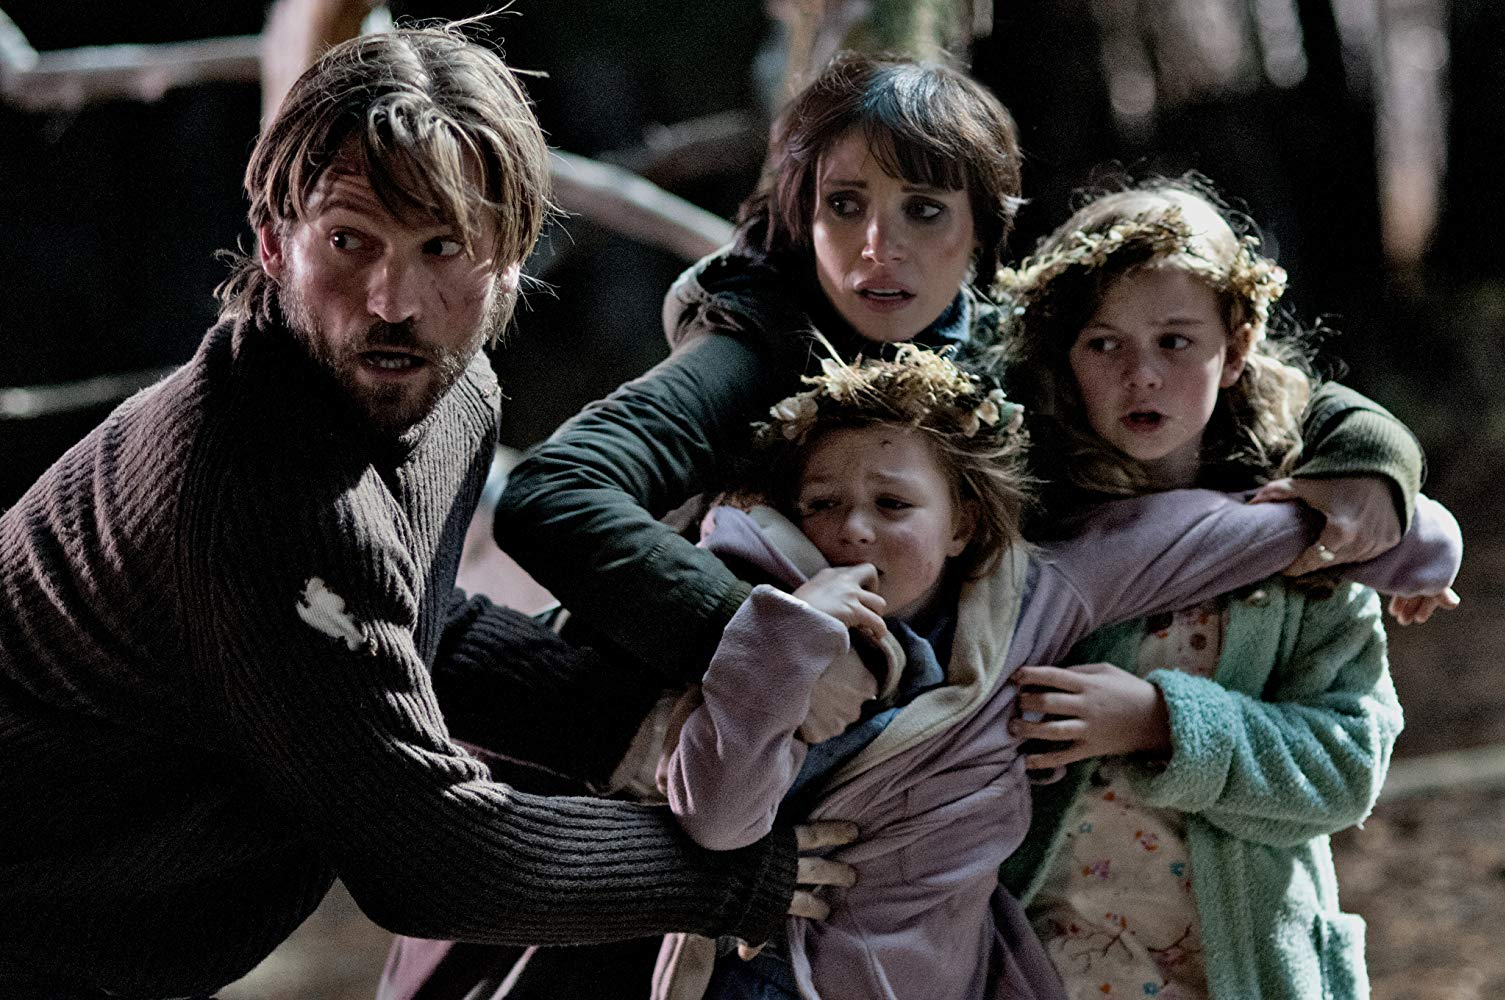 Nikolaj Coster-Waldau and Jessica Chastain and the two girls Isabelle Nelisse and Megan Charpentier try to get away from Mama (2013)